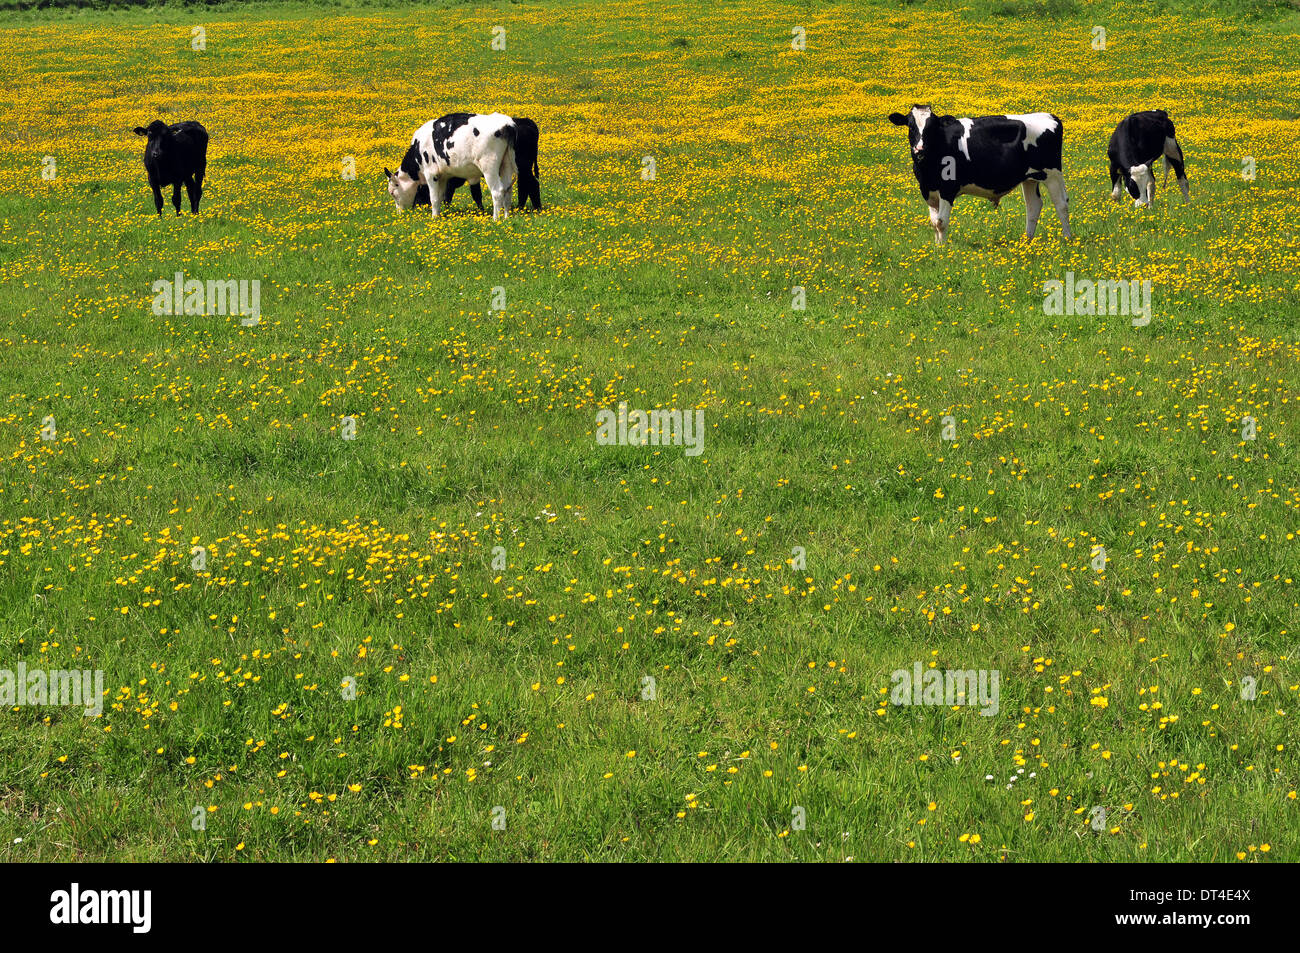 Grazing Cattle Pasture Yellow Flowers Stock Photos Grazing Cattle